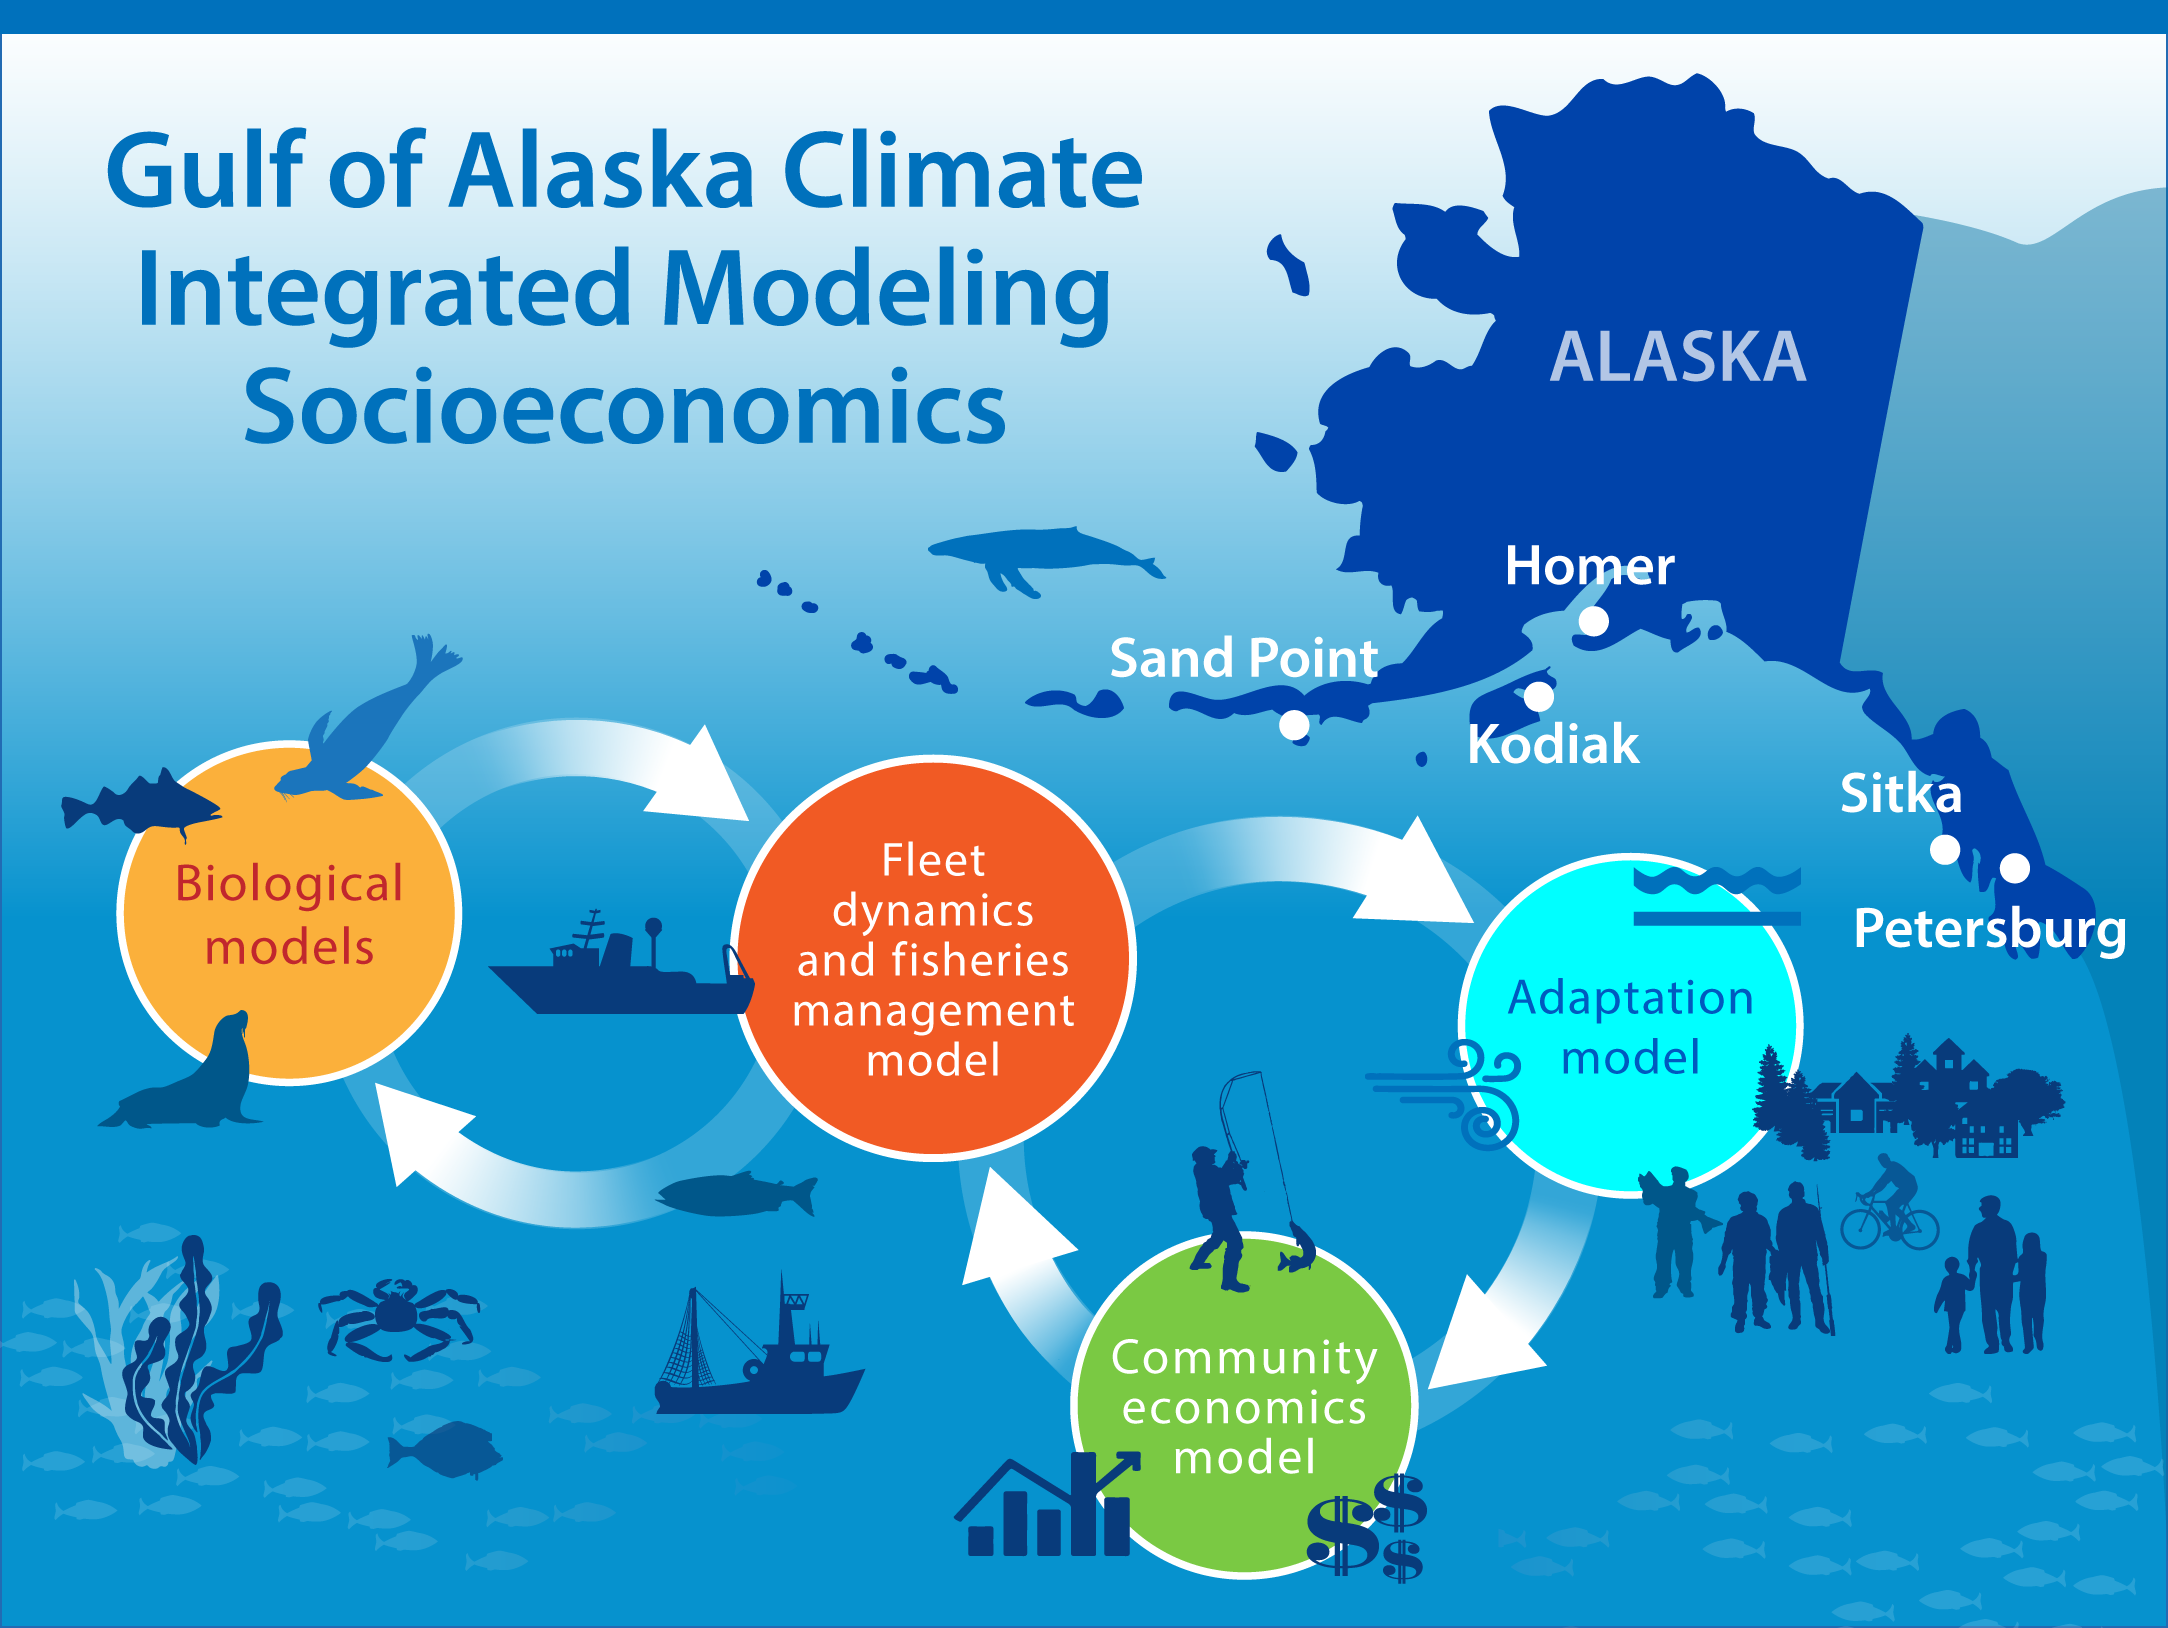 Infographic of the Gulf of Alaska showing biological, fleet dynamics/fisheries management, community economics and adaptation models.